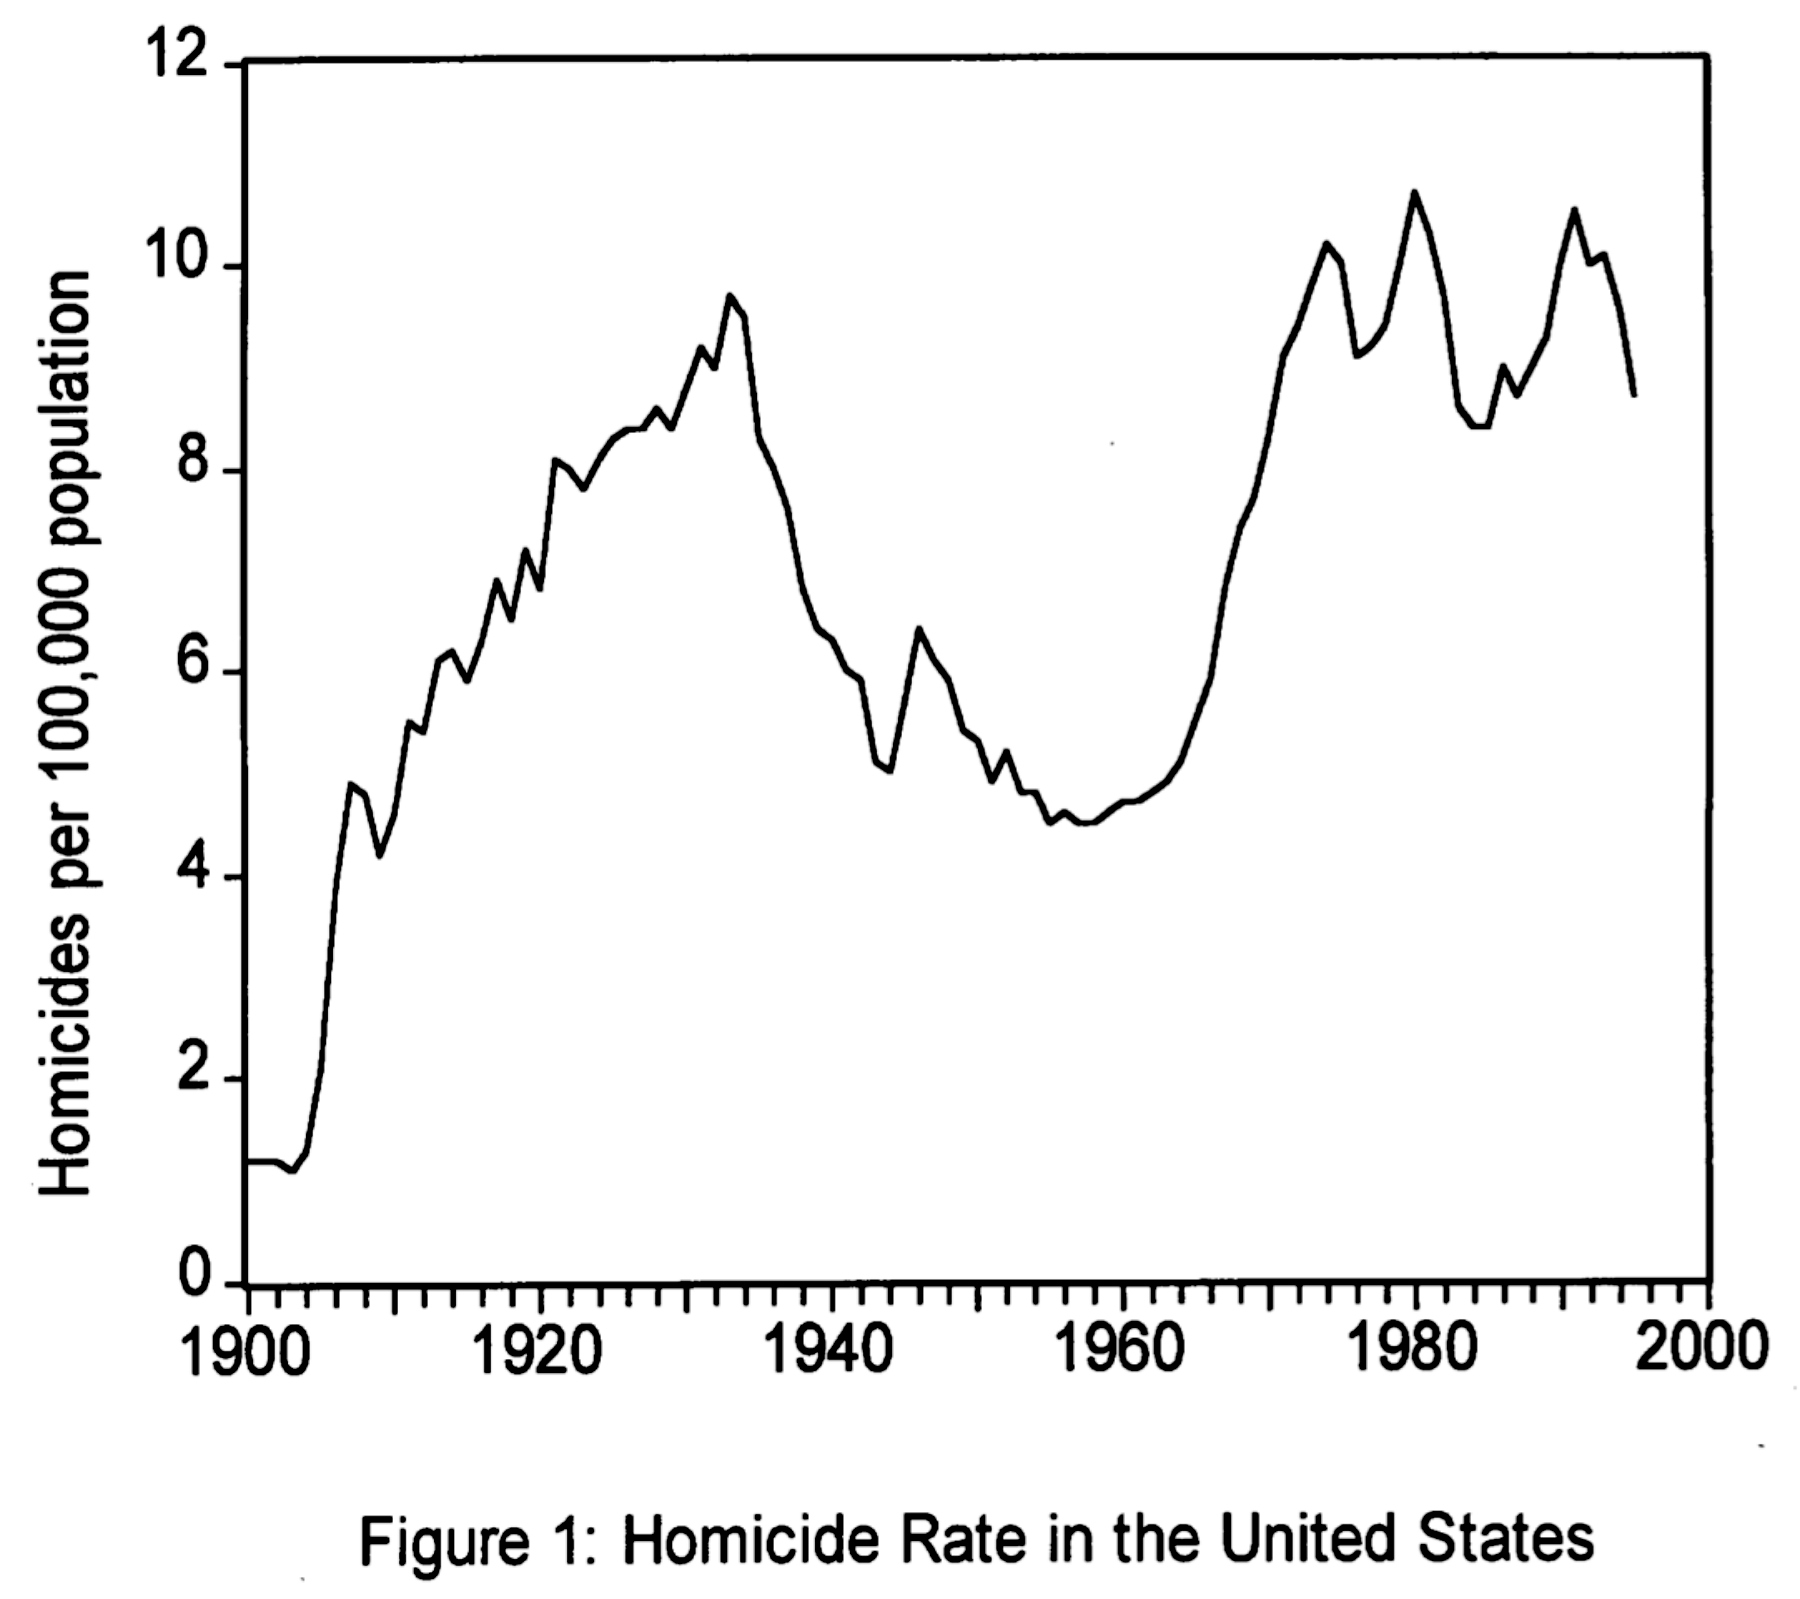 Homicide Rate in the United States